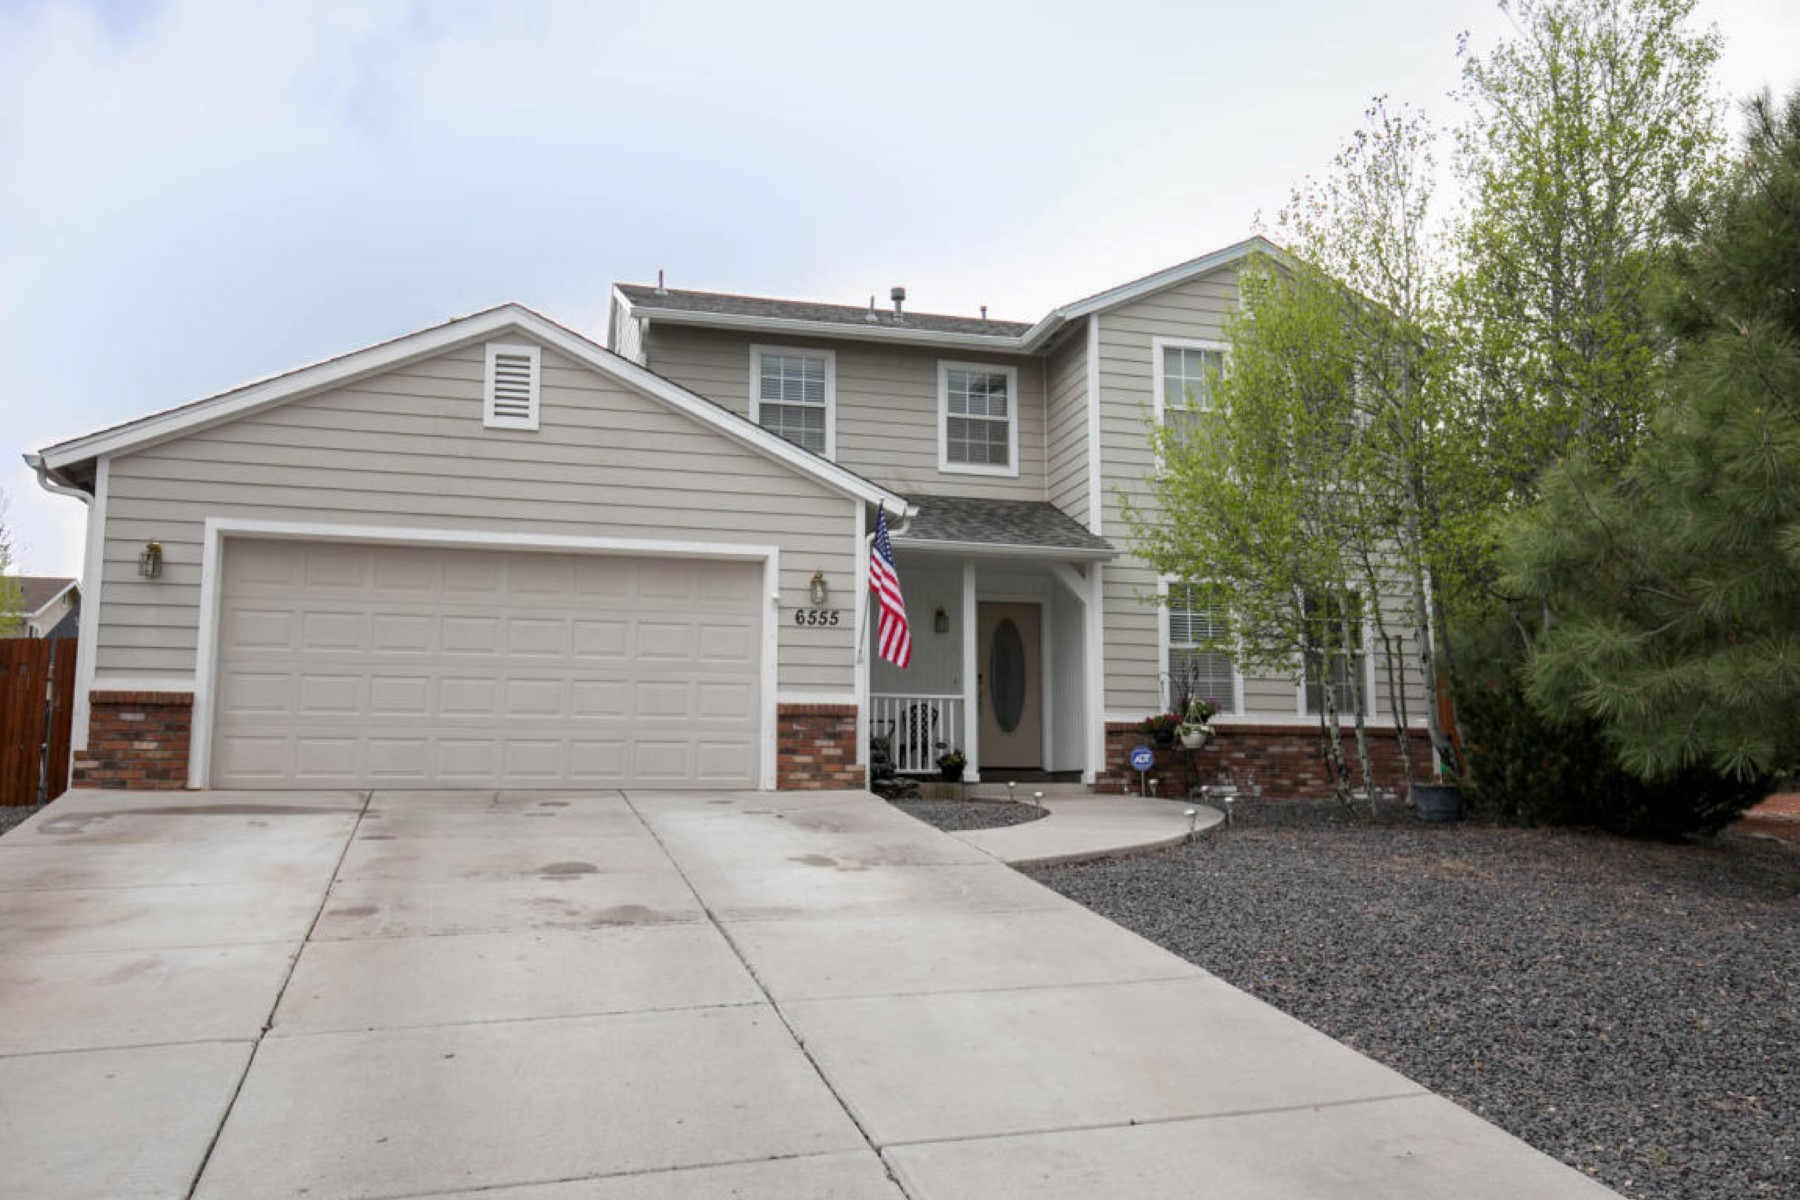 Single Family Home for Sale at Spectacular home in the ever-popular Walnut Hills neighborhood 6555 E Vail Dr Flagstaff, Arizona, 86004 United States